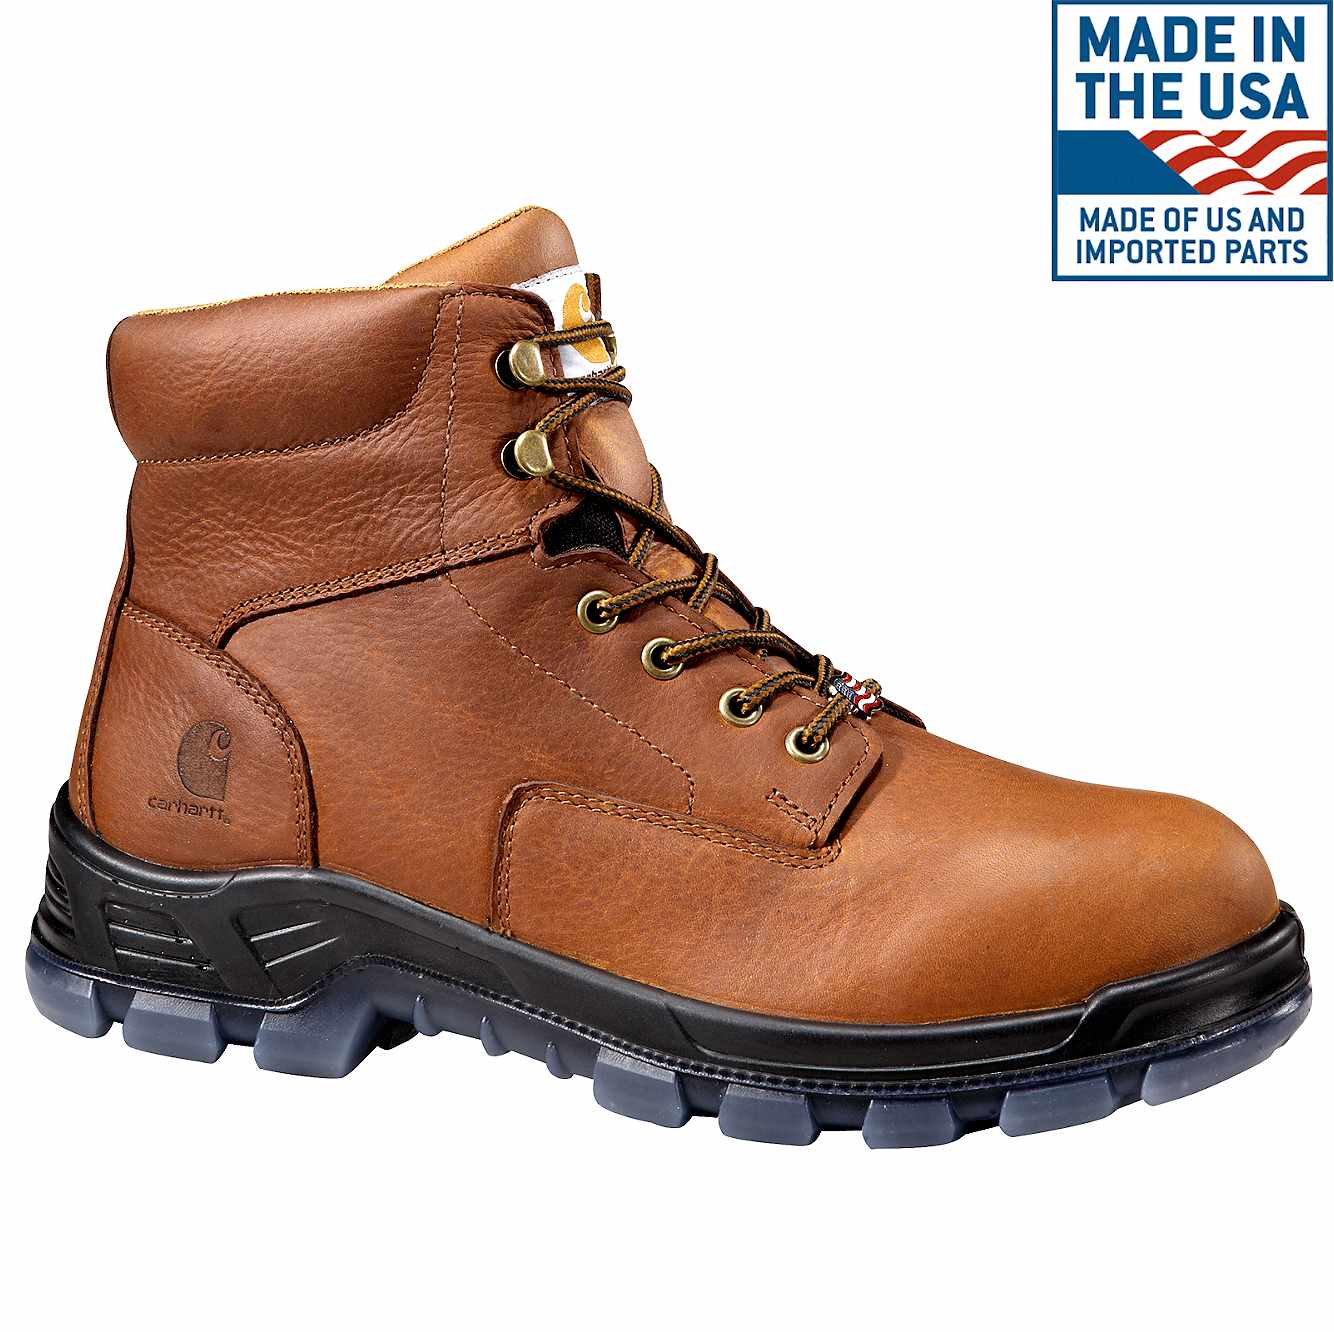 b8aab9936 Men's Made in the USA 6-Inch Non-Safety Toe Work Boot | Carhartt